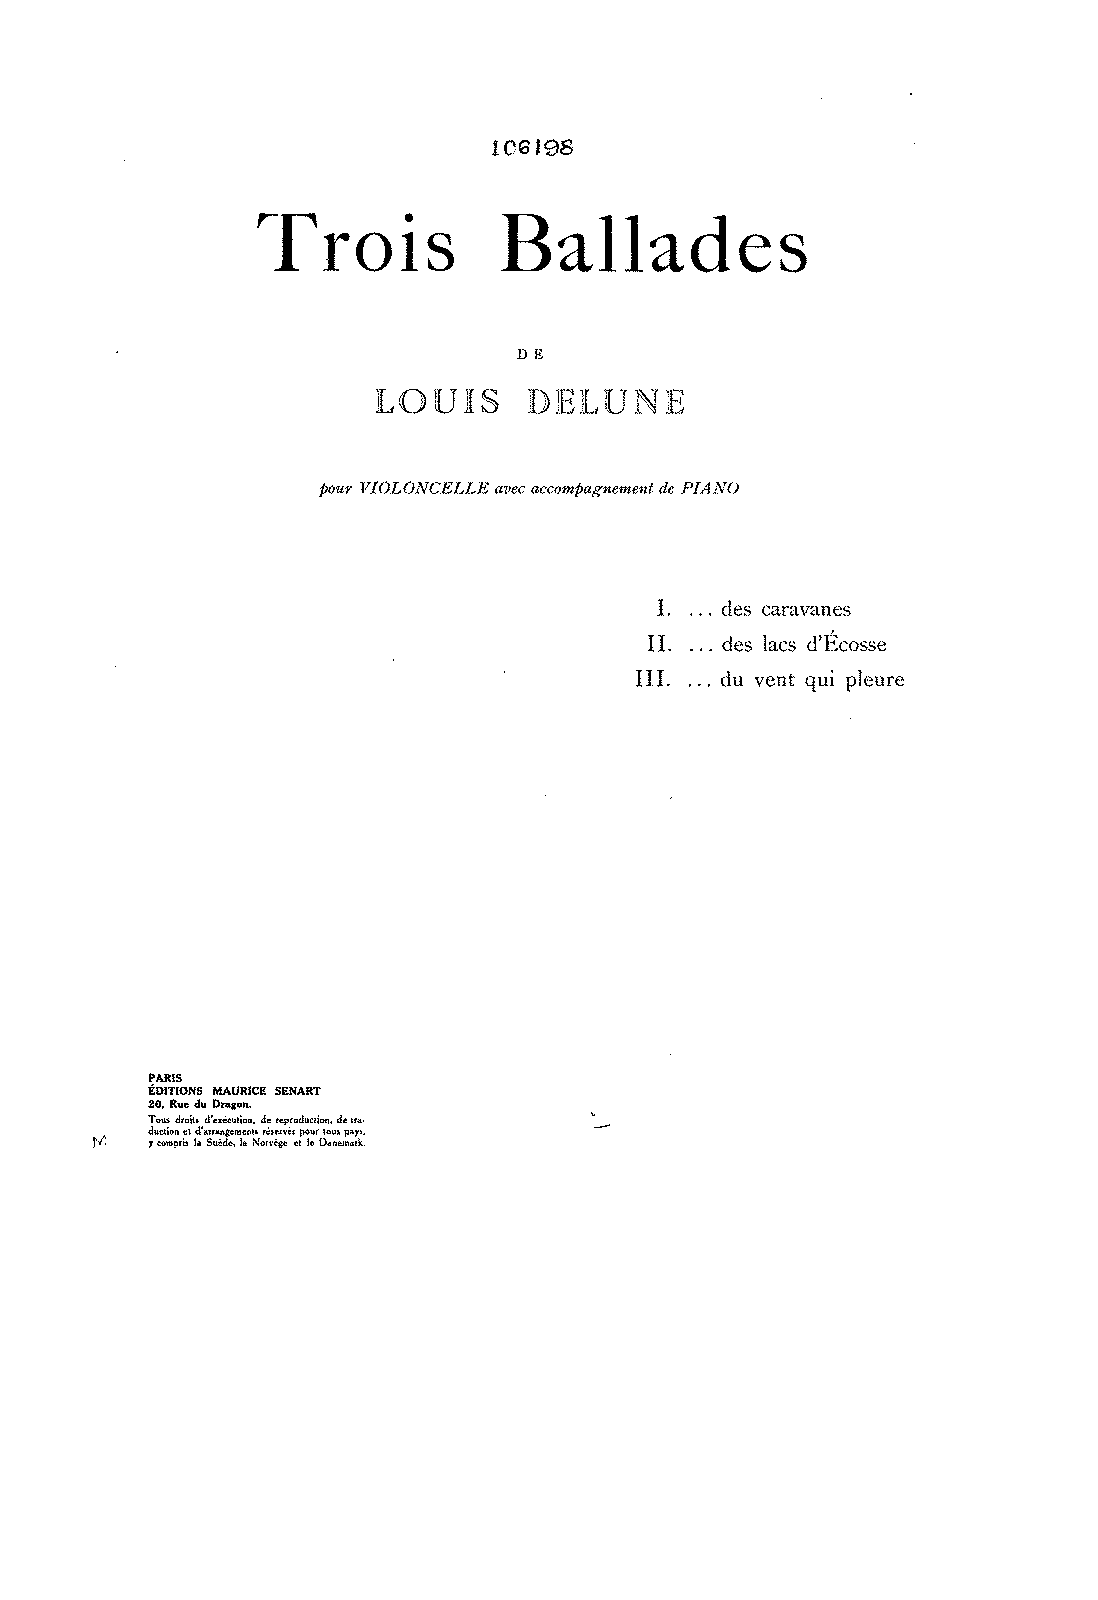 PMLP136106-Delune - 3 Ballades for Cello and Piano score.pdf